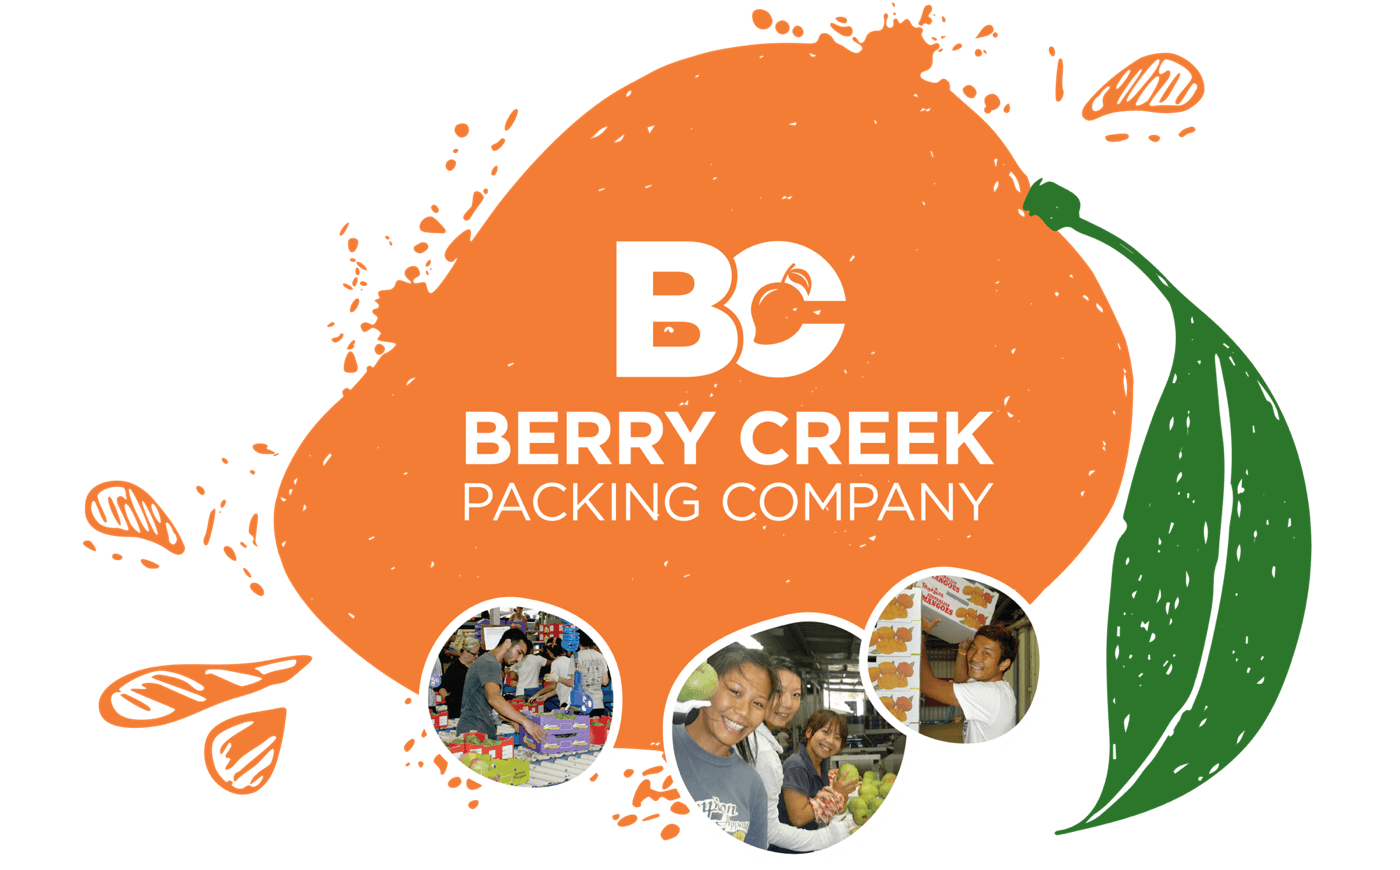 Berry Creek Packing Company